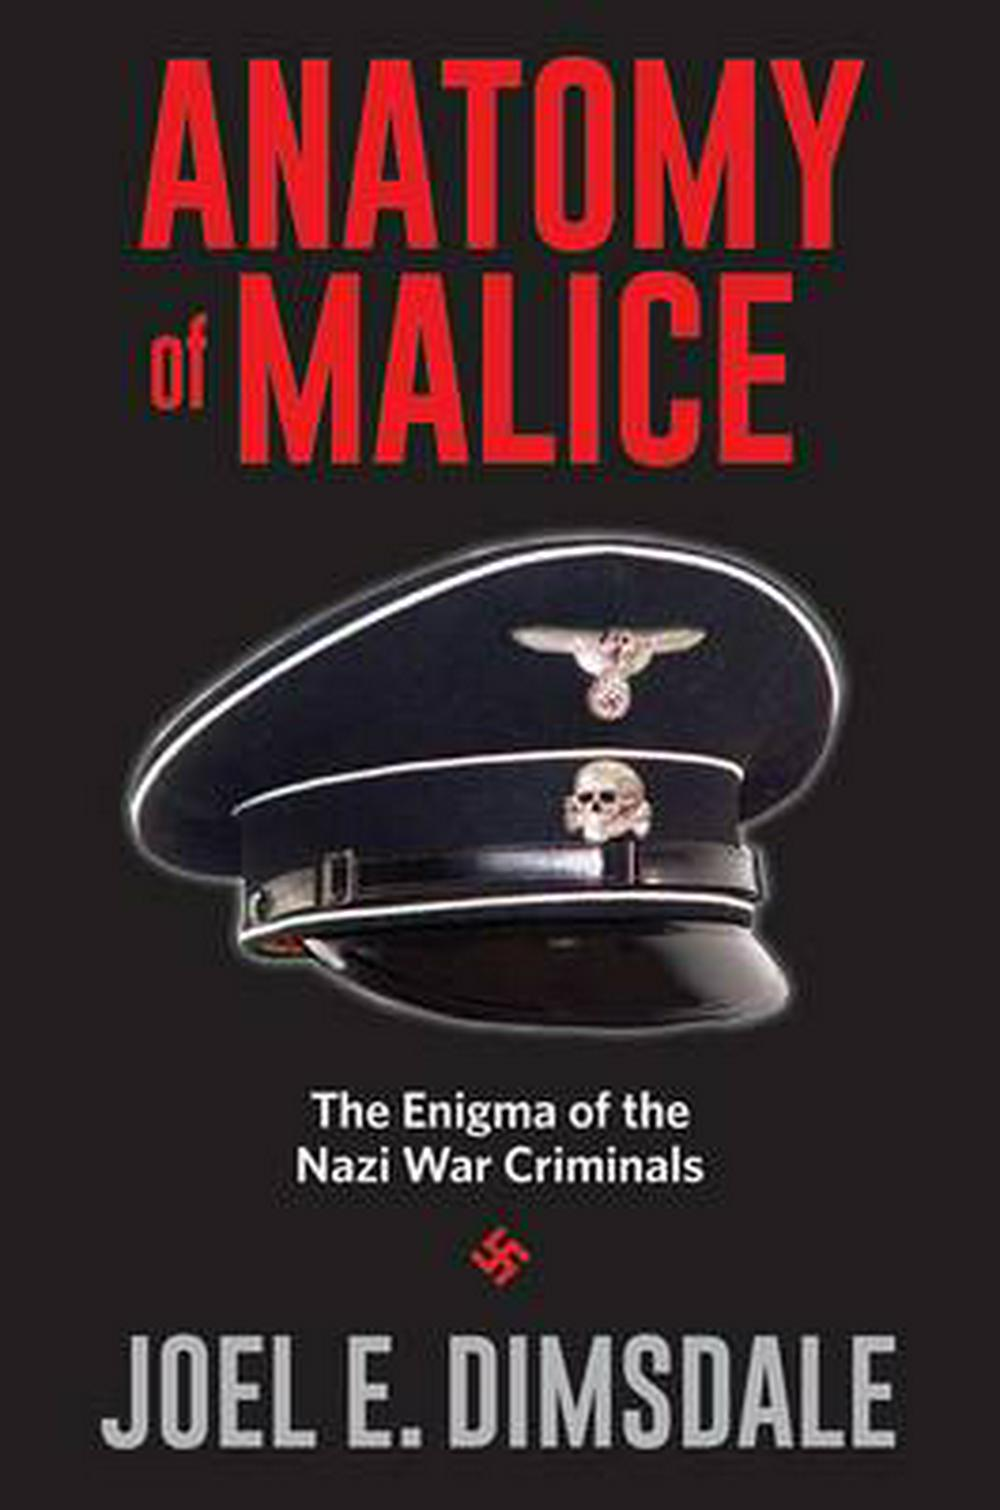 Anatomy of MaliceThe Enigma of the Nazi War Criminals